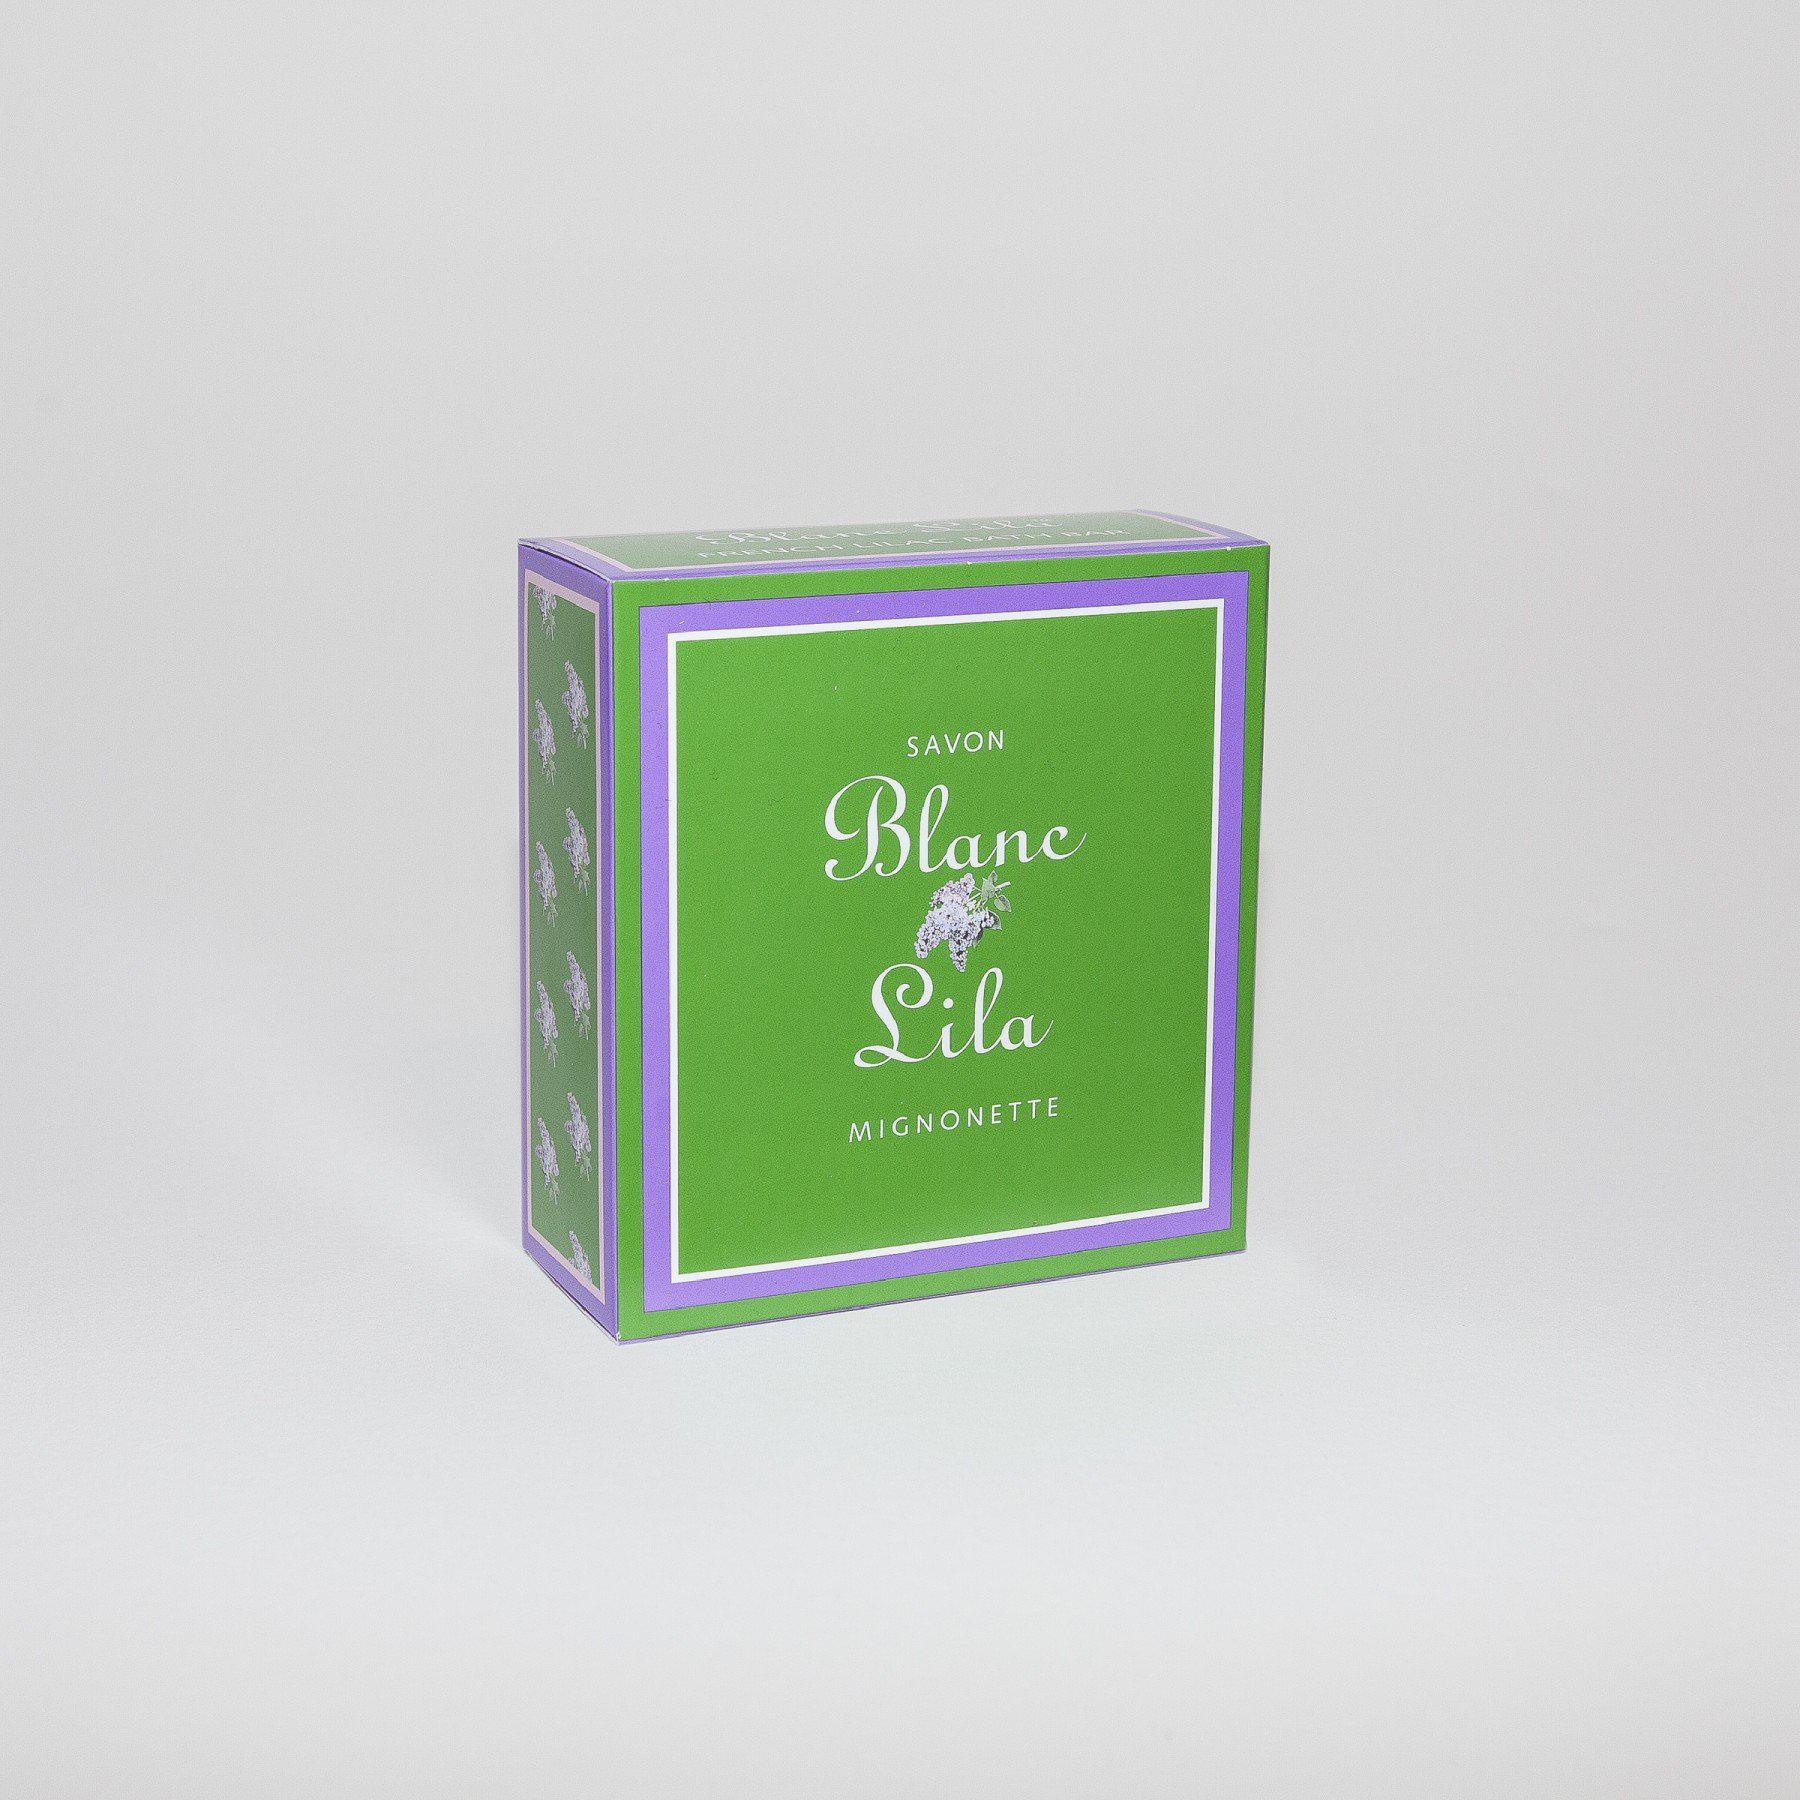 Blanc Lila Pretty Mignonette Single Bar - 6 oz-Blanc Lila-BeautyOfASite | Beauty, Fashion & Gourmet Boutique